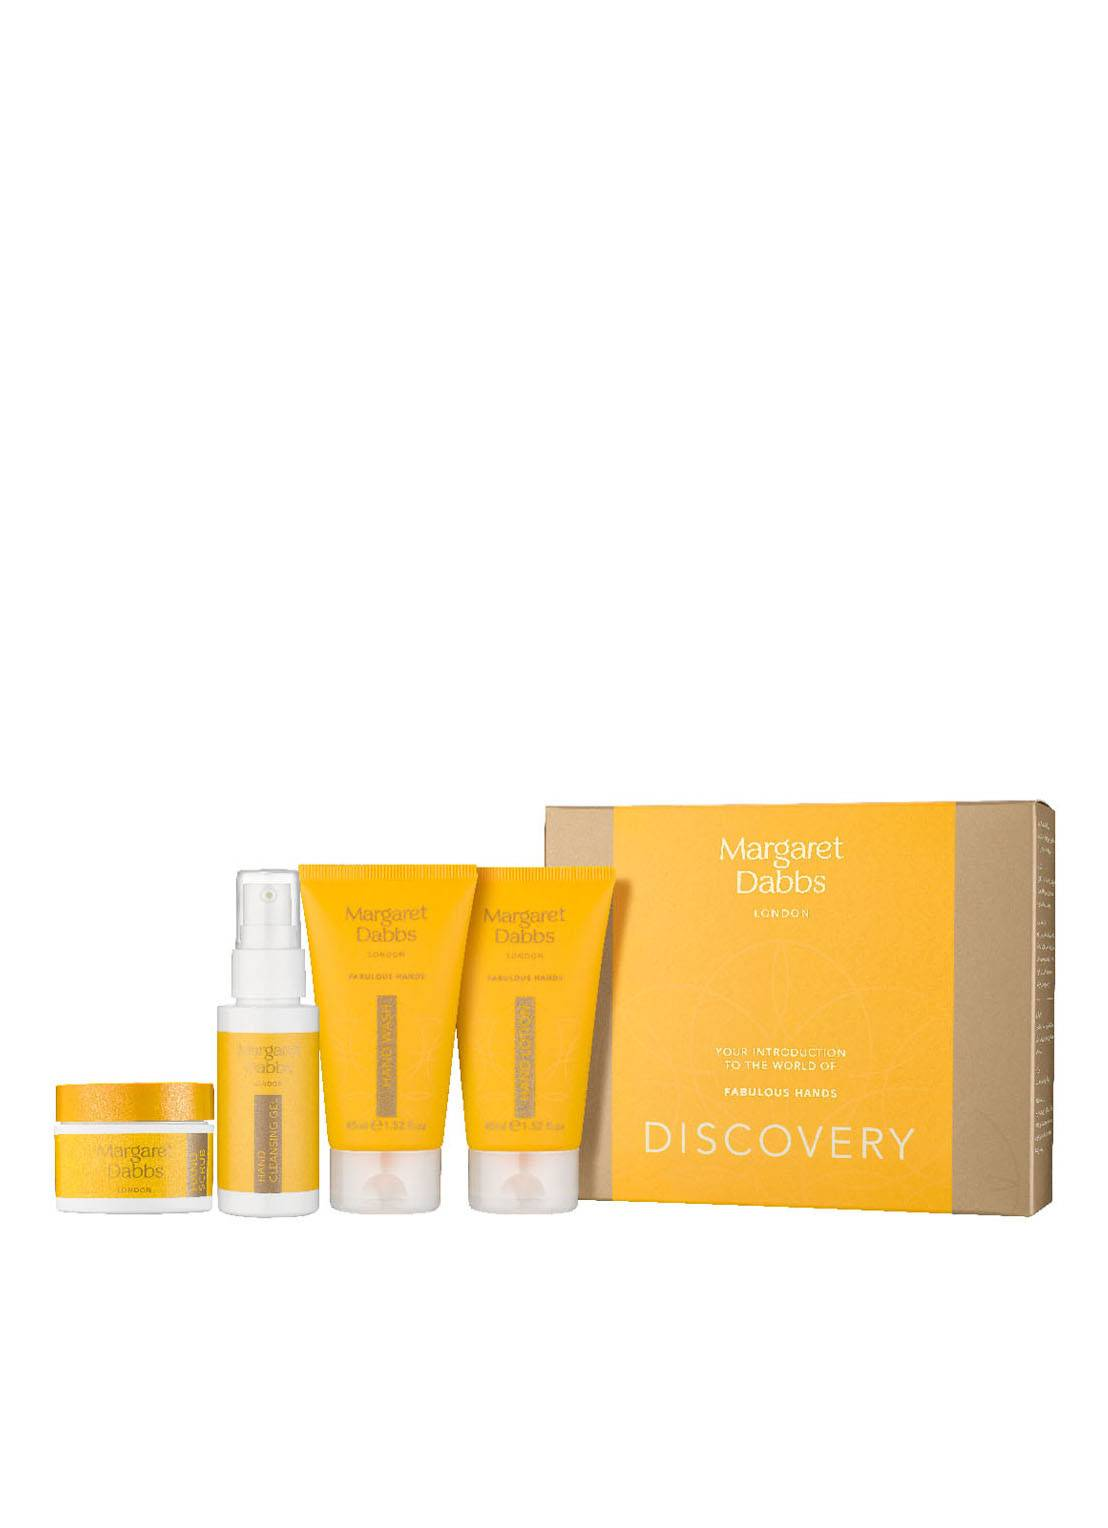 margaret dabbs london Discovery Set For Fabulous Hands - set de soins pour les mains -